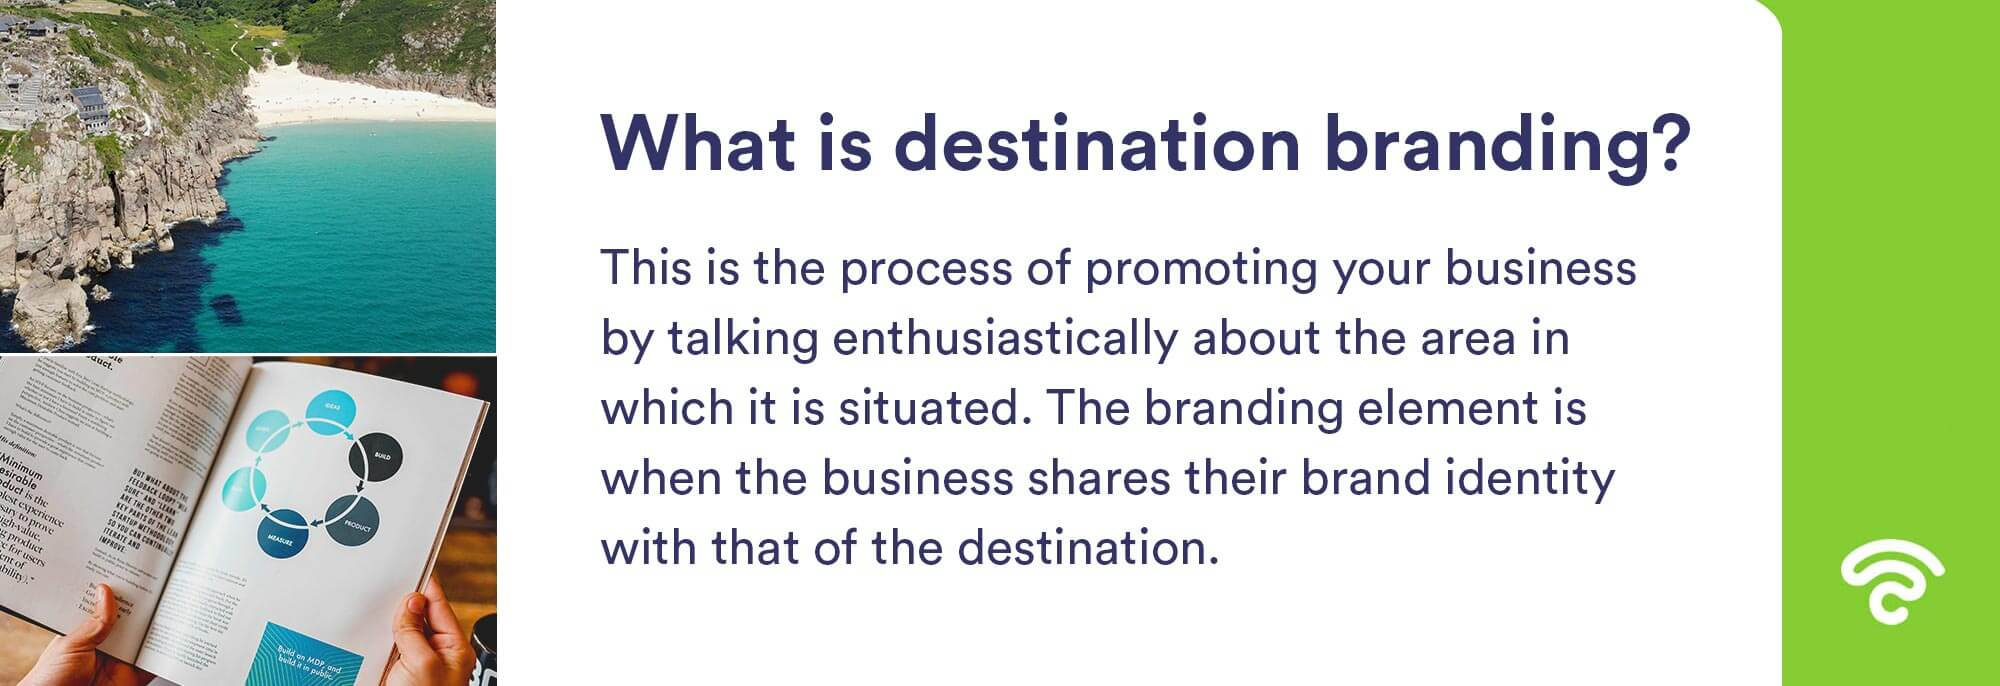 what is destination branding